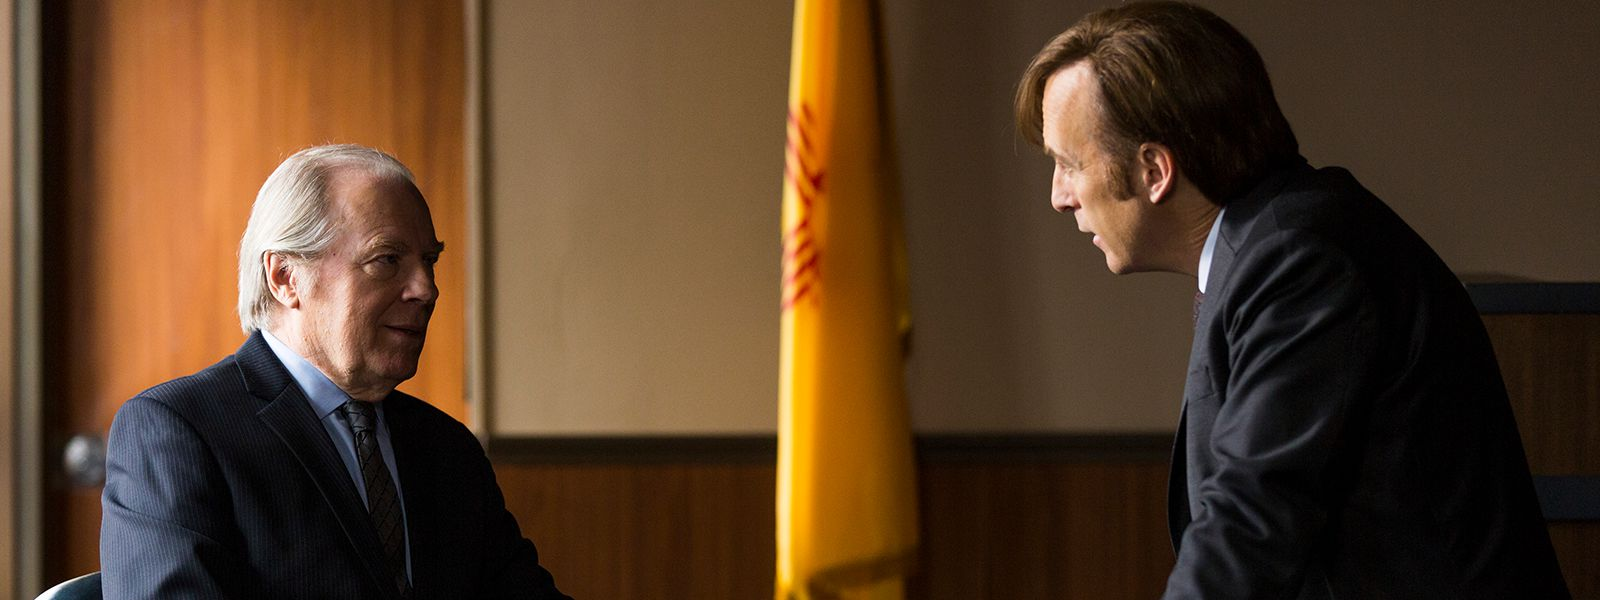 better-call-saul-305-chuck-mcgill-michael-mckean-jimmy-bob-odenkirk-800×600